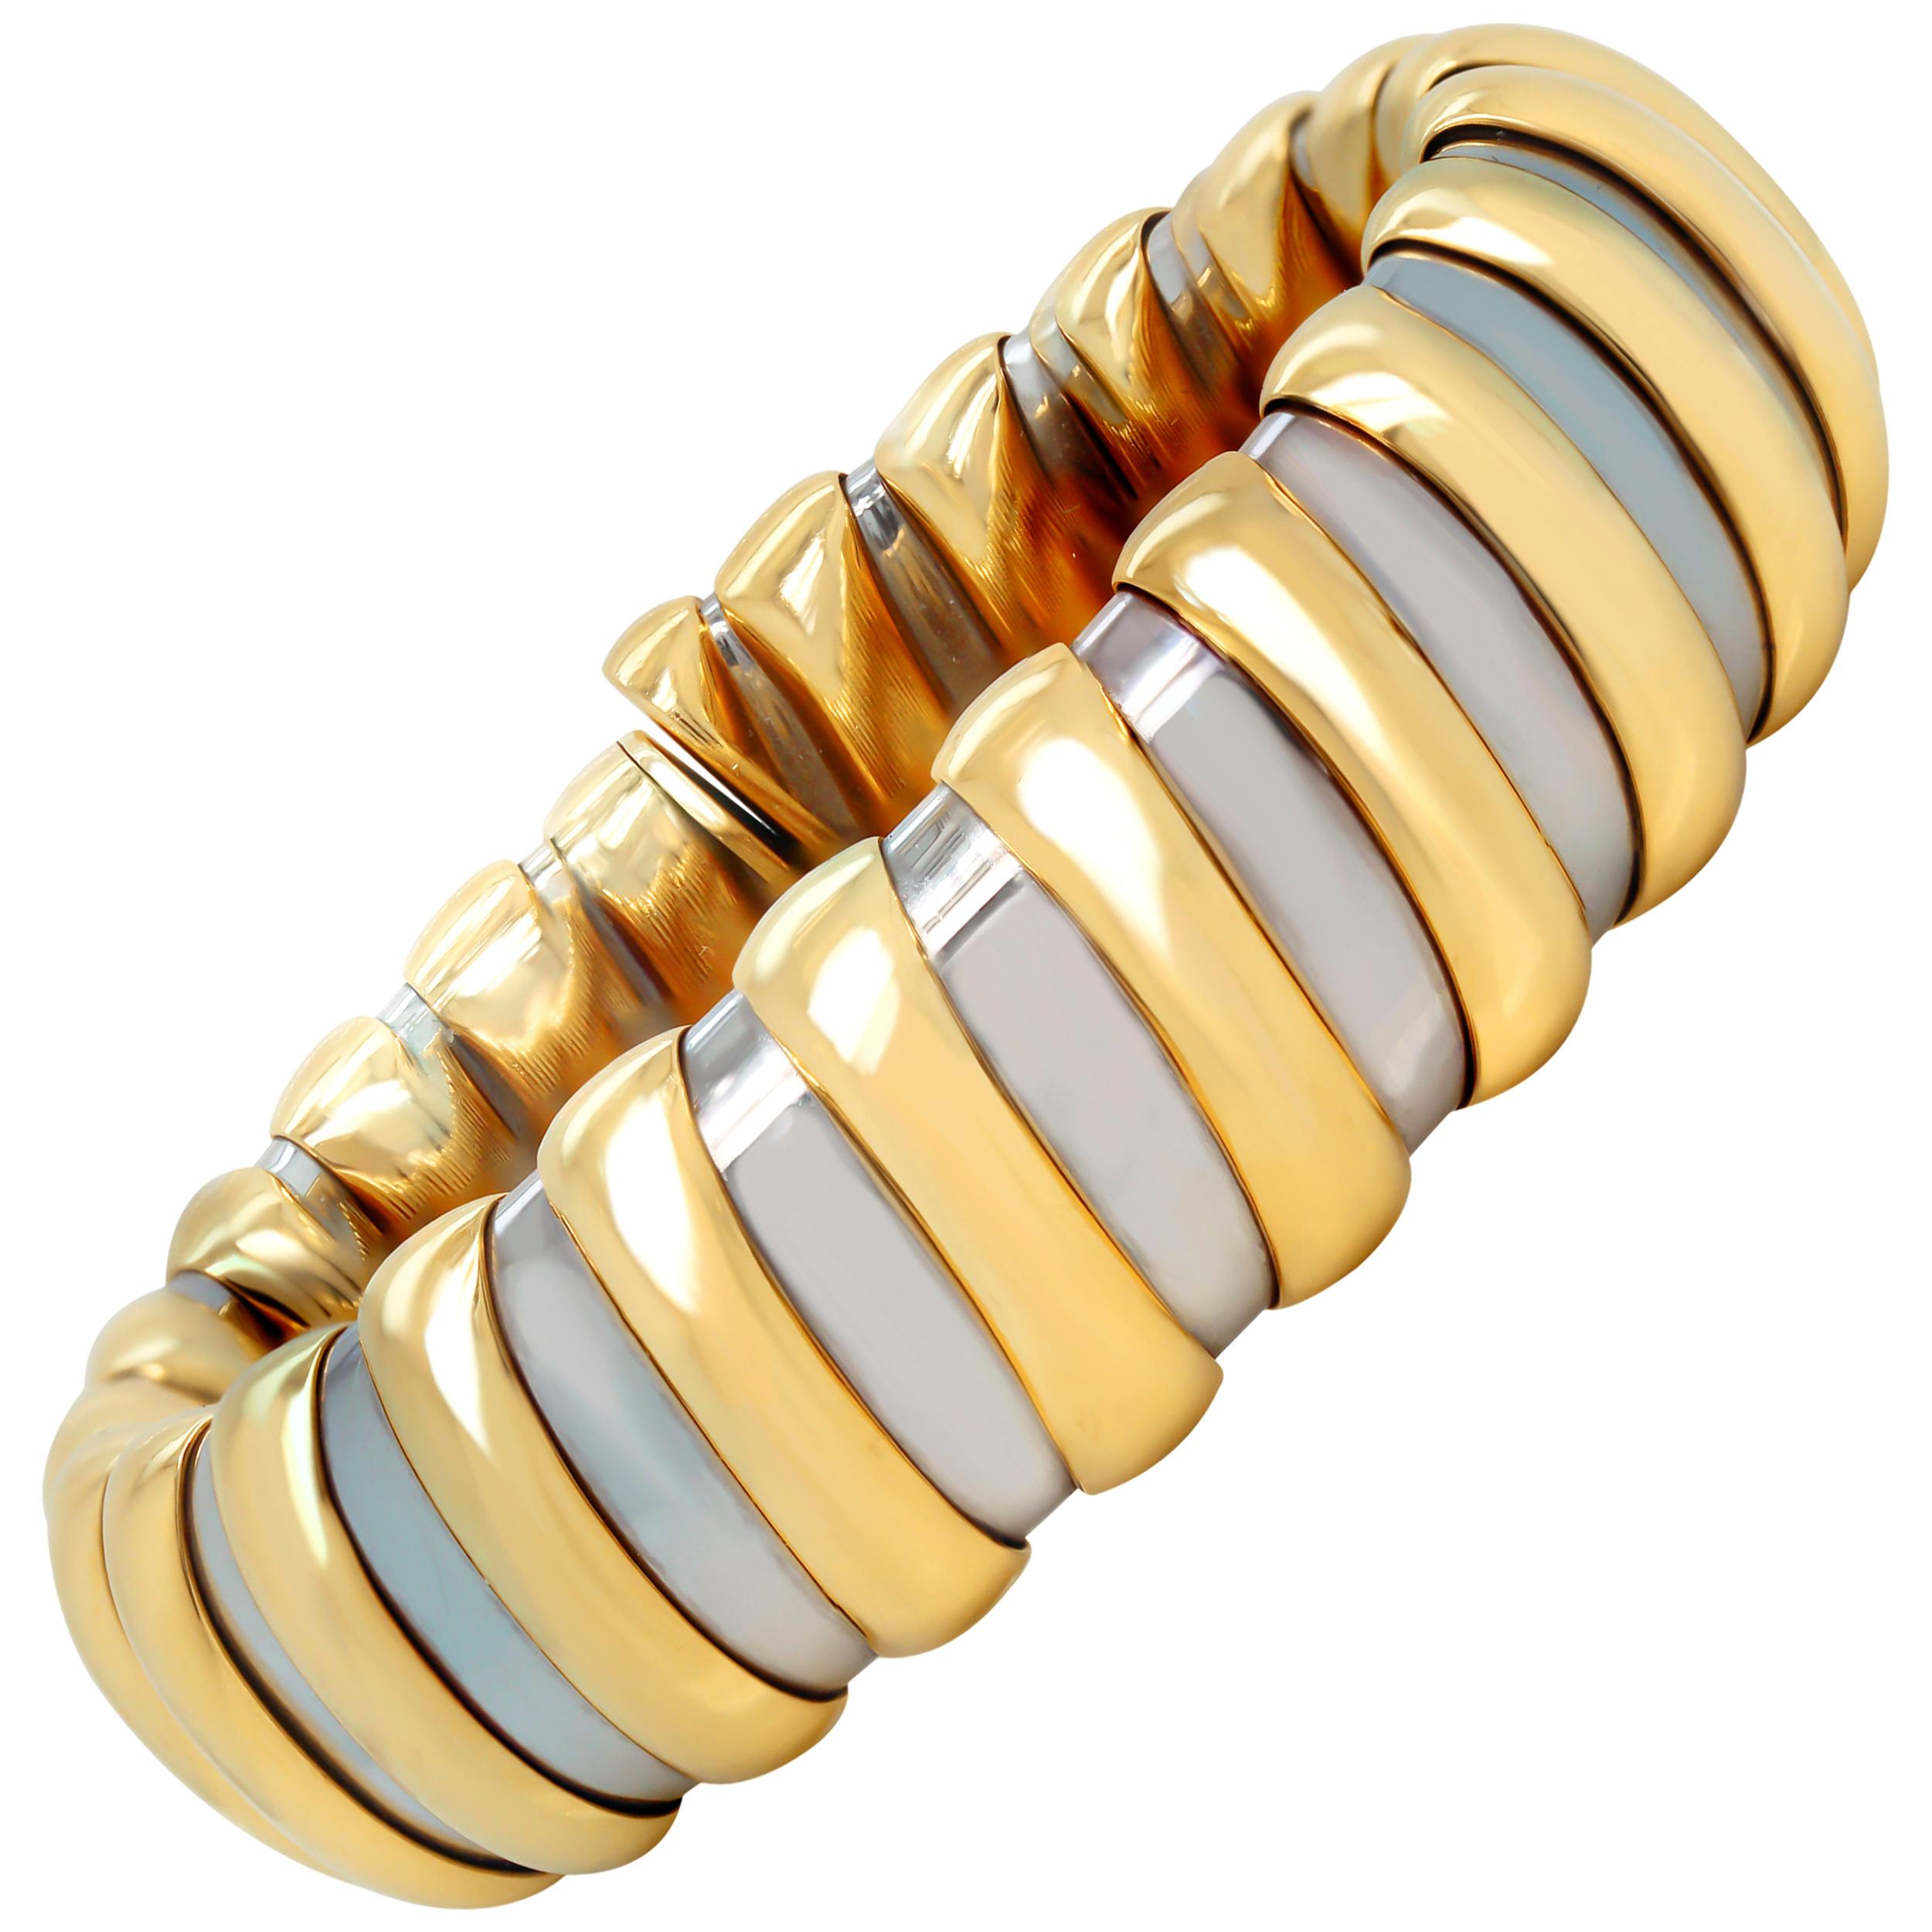 Bulgari Tubogas 18 Karat Yellow Gold Stainless Steel Flexible Bangle Bracelet